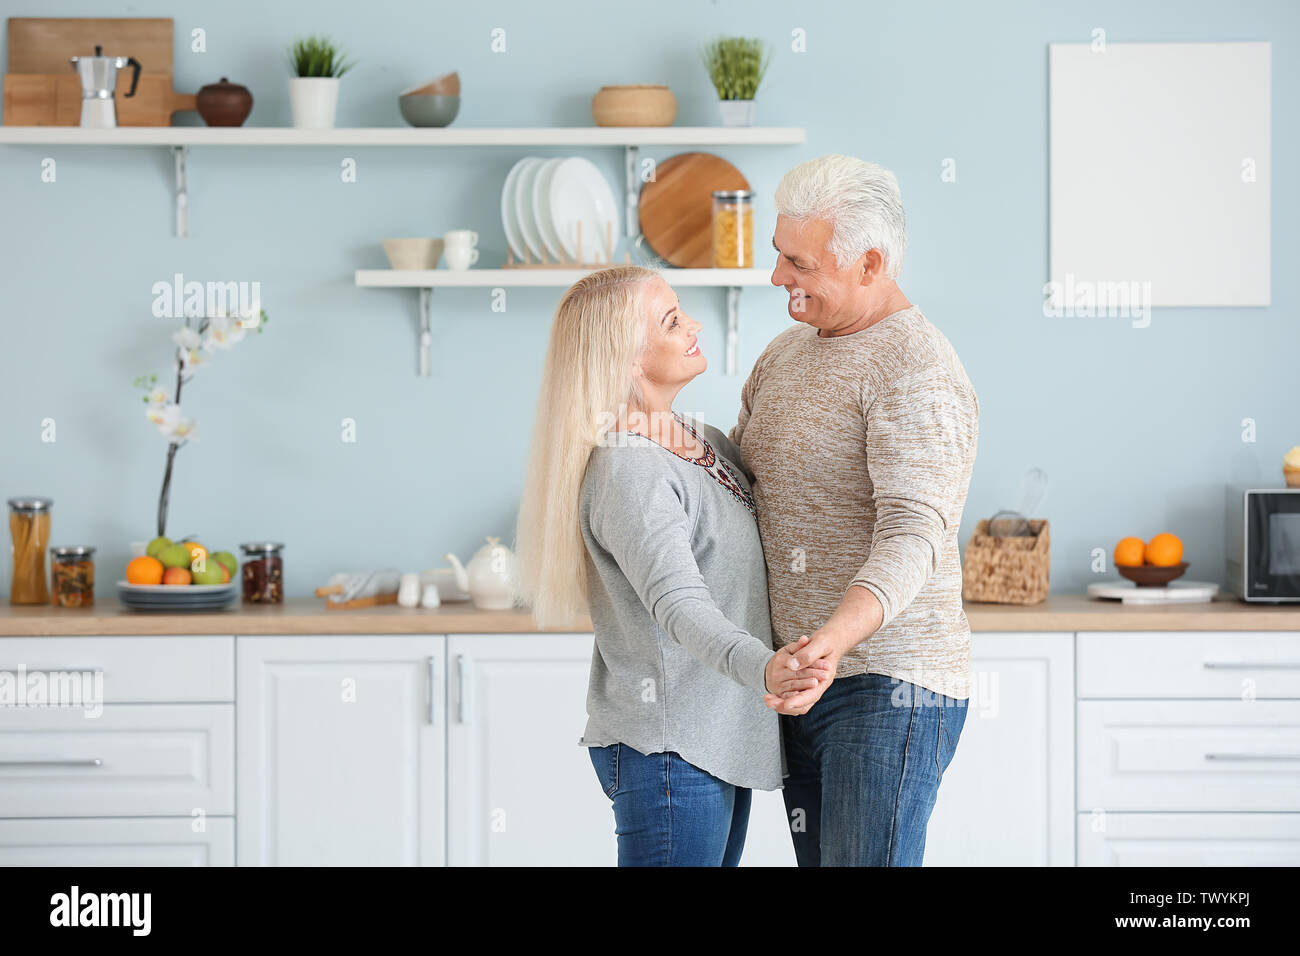 Portrait of happy mature couple dancing in kitchen - Stock Image